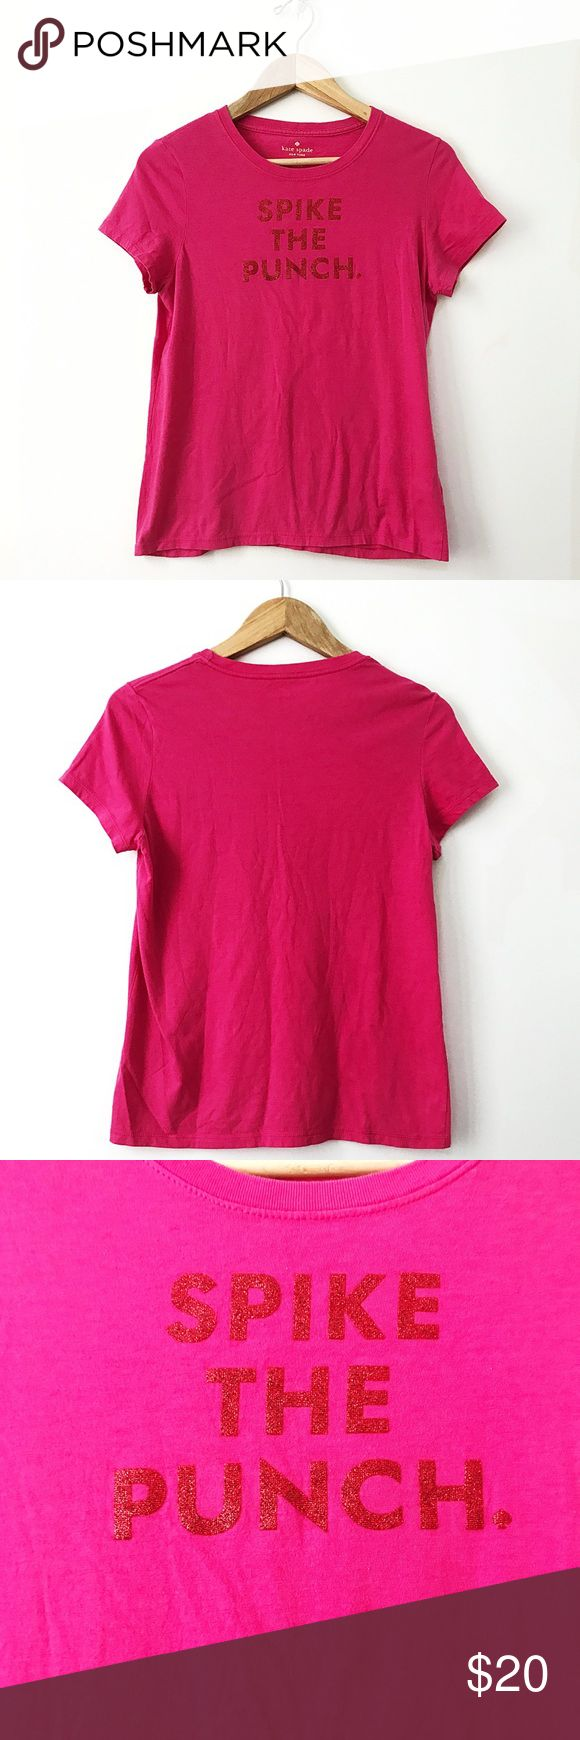 "Kate spade ""spike the punch "" tee Adorable spike the punch t-shirt in hot pink and glitter lettering . Perfect statement tee for any day ! Measurements : length : 24 in.   Pit to pit : 17 in. kate spade Tops Tees - Short Sleeve"